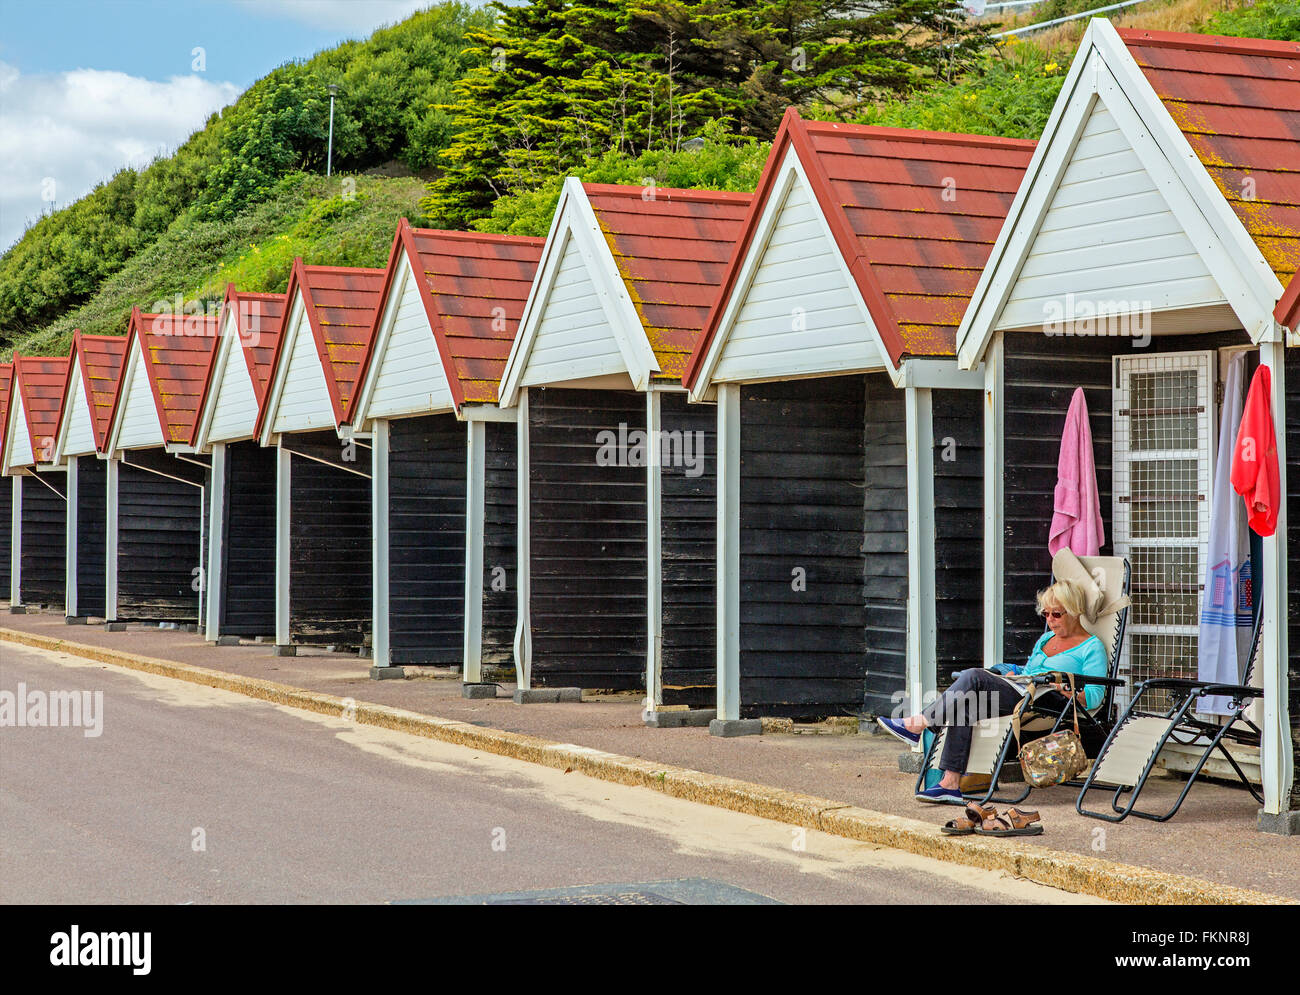 Lady relaxes in the sun, outside her beach hut, at Brighton beach / promenade, UK - Stock Image